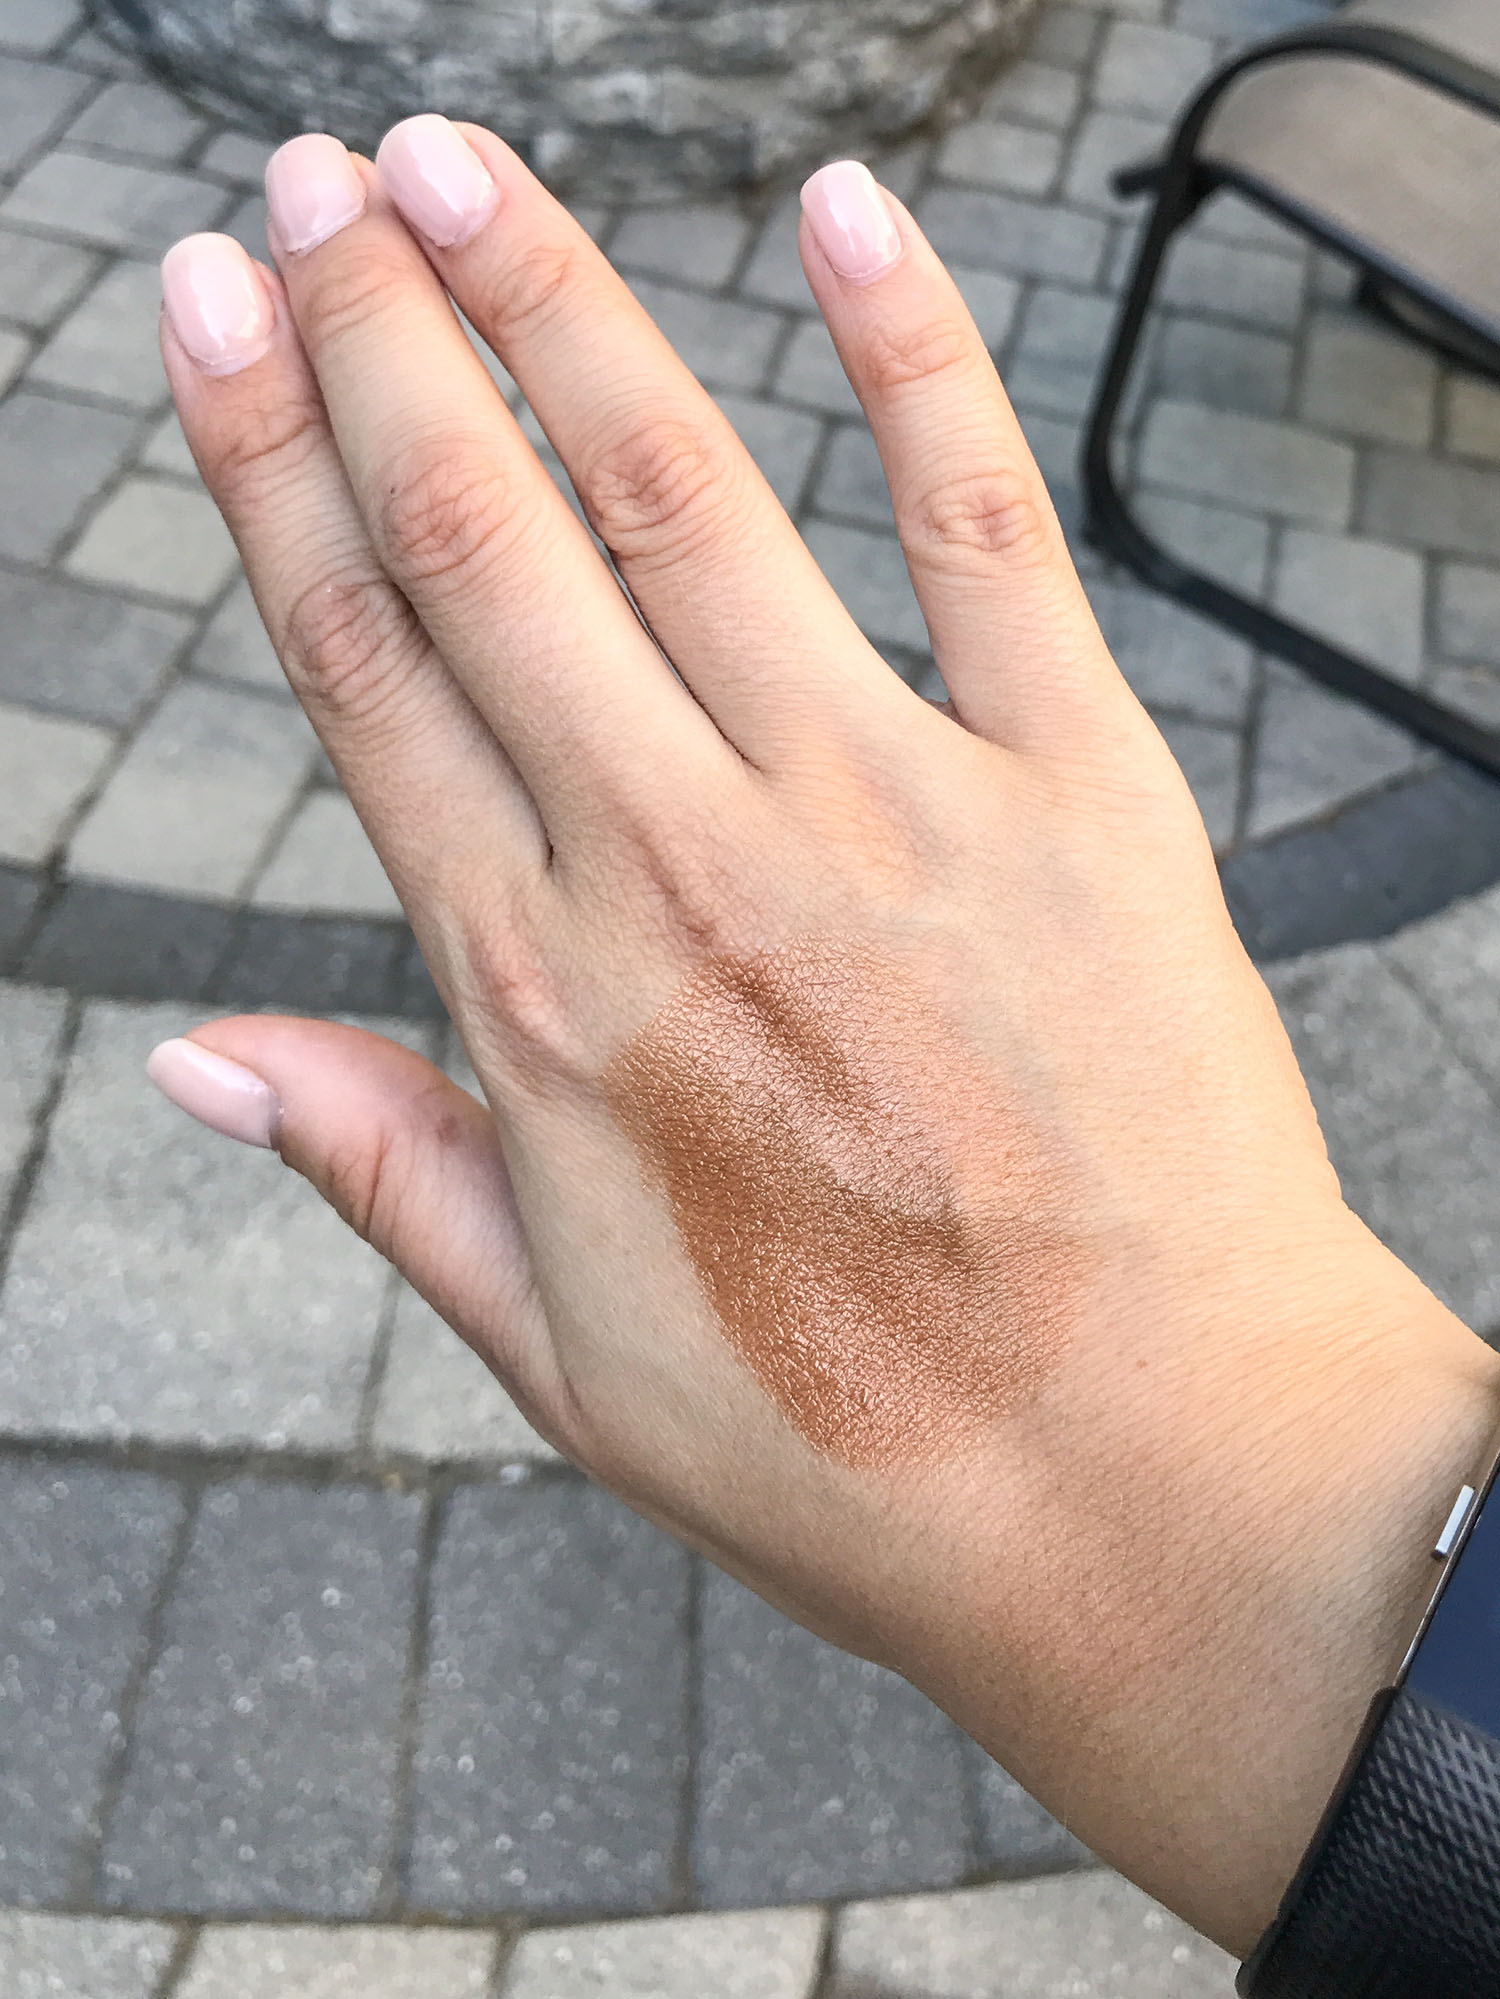 Drunk Elephant D Bronzi Review | Drunk Elephant D Bronzi Swatch on Medium Tan Skin